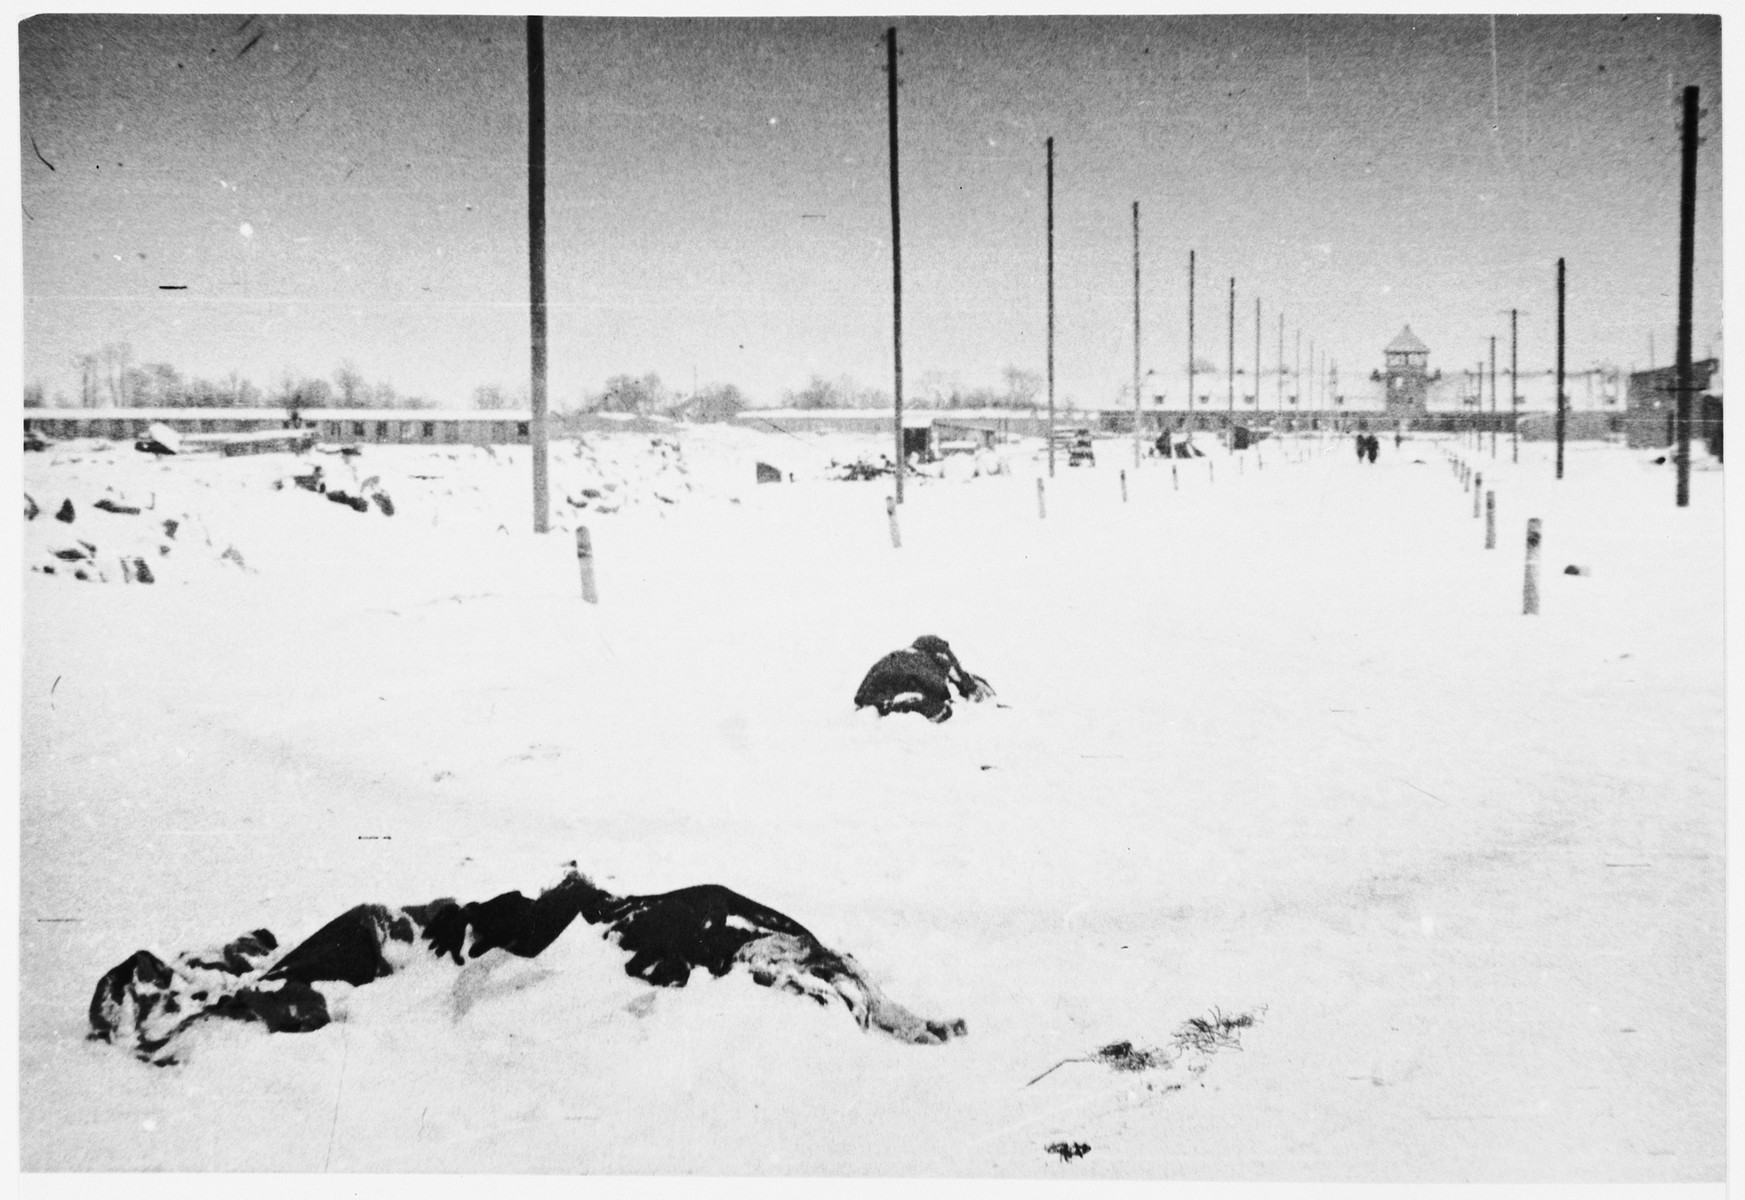 """The bodies of prisoners who perished during the evacuation of Auschwitz-Birkenau lie covered in snow on the main street of the camp immediately after the liberation.  Original caption:  """"The trail of evacuation, marked by bodies every few steps.  Those who fell were killed on the spot."""""""